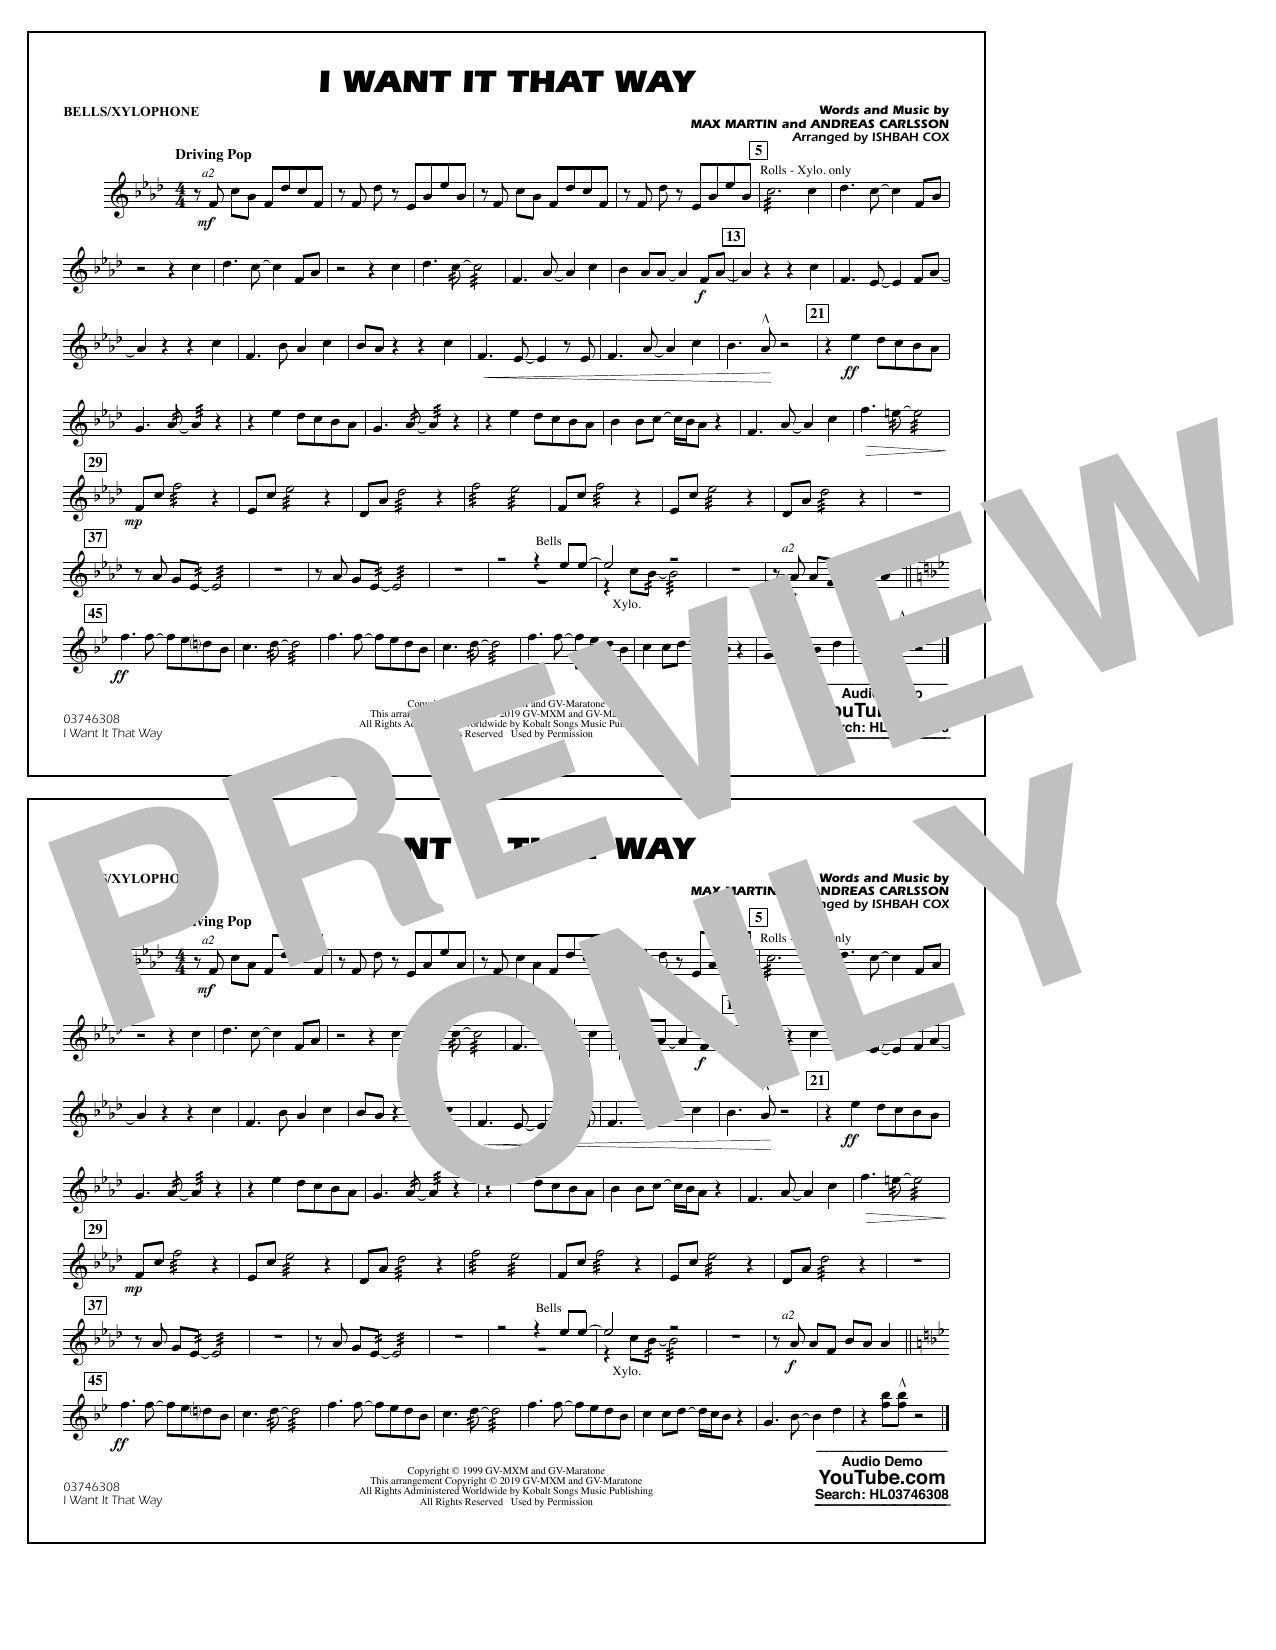 Backstreet Boys I Want It That Way (arr. Ishbah Cox) - Bells/Xylophone sheet music notes and chords